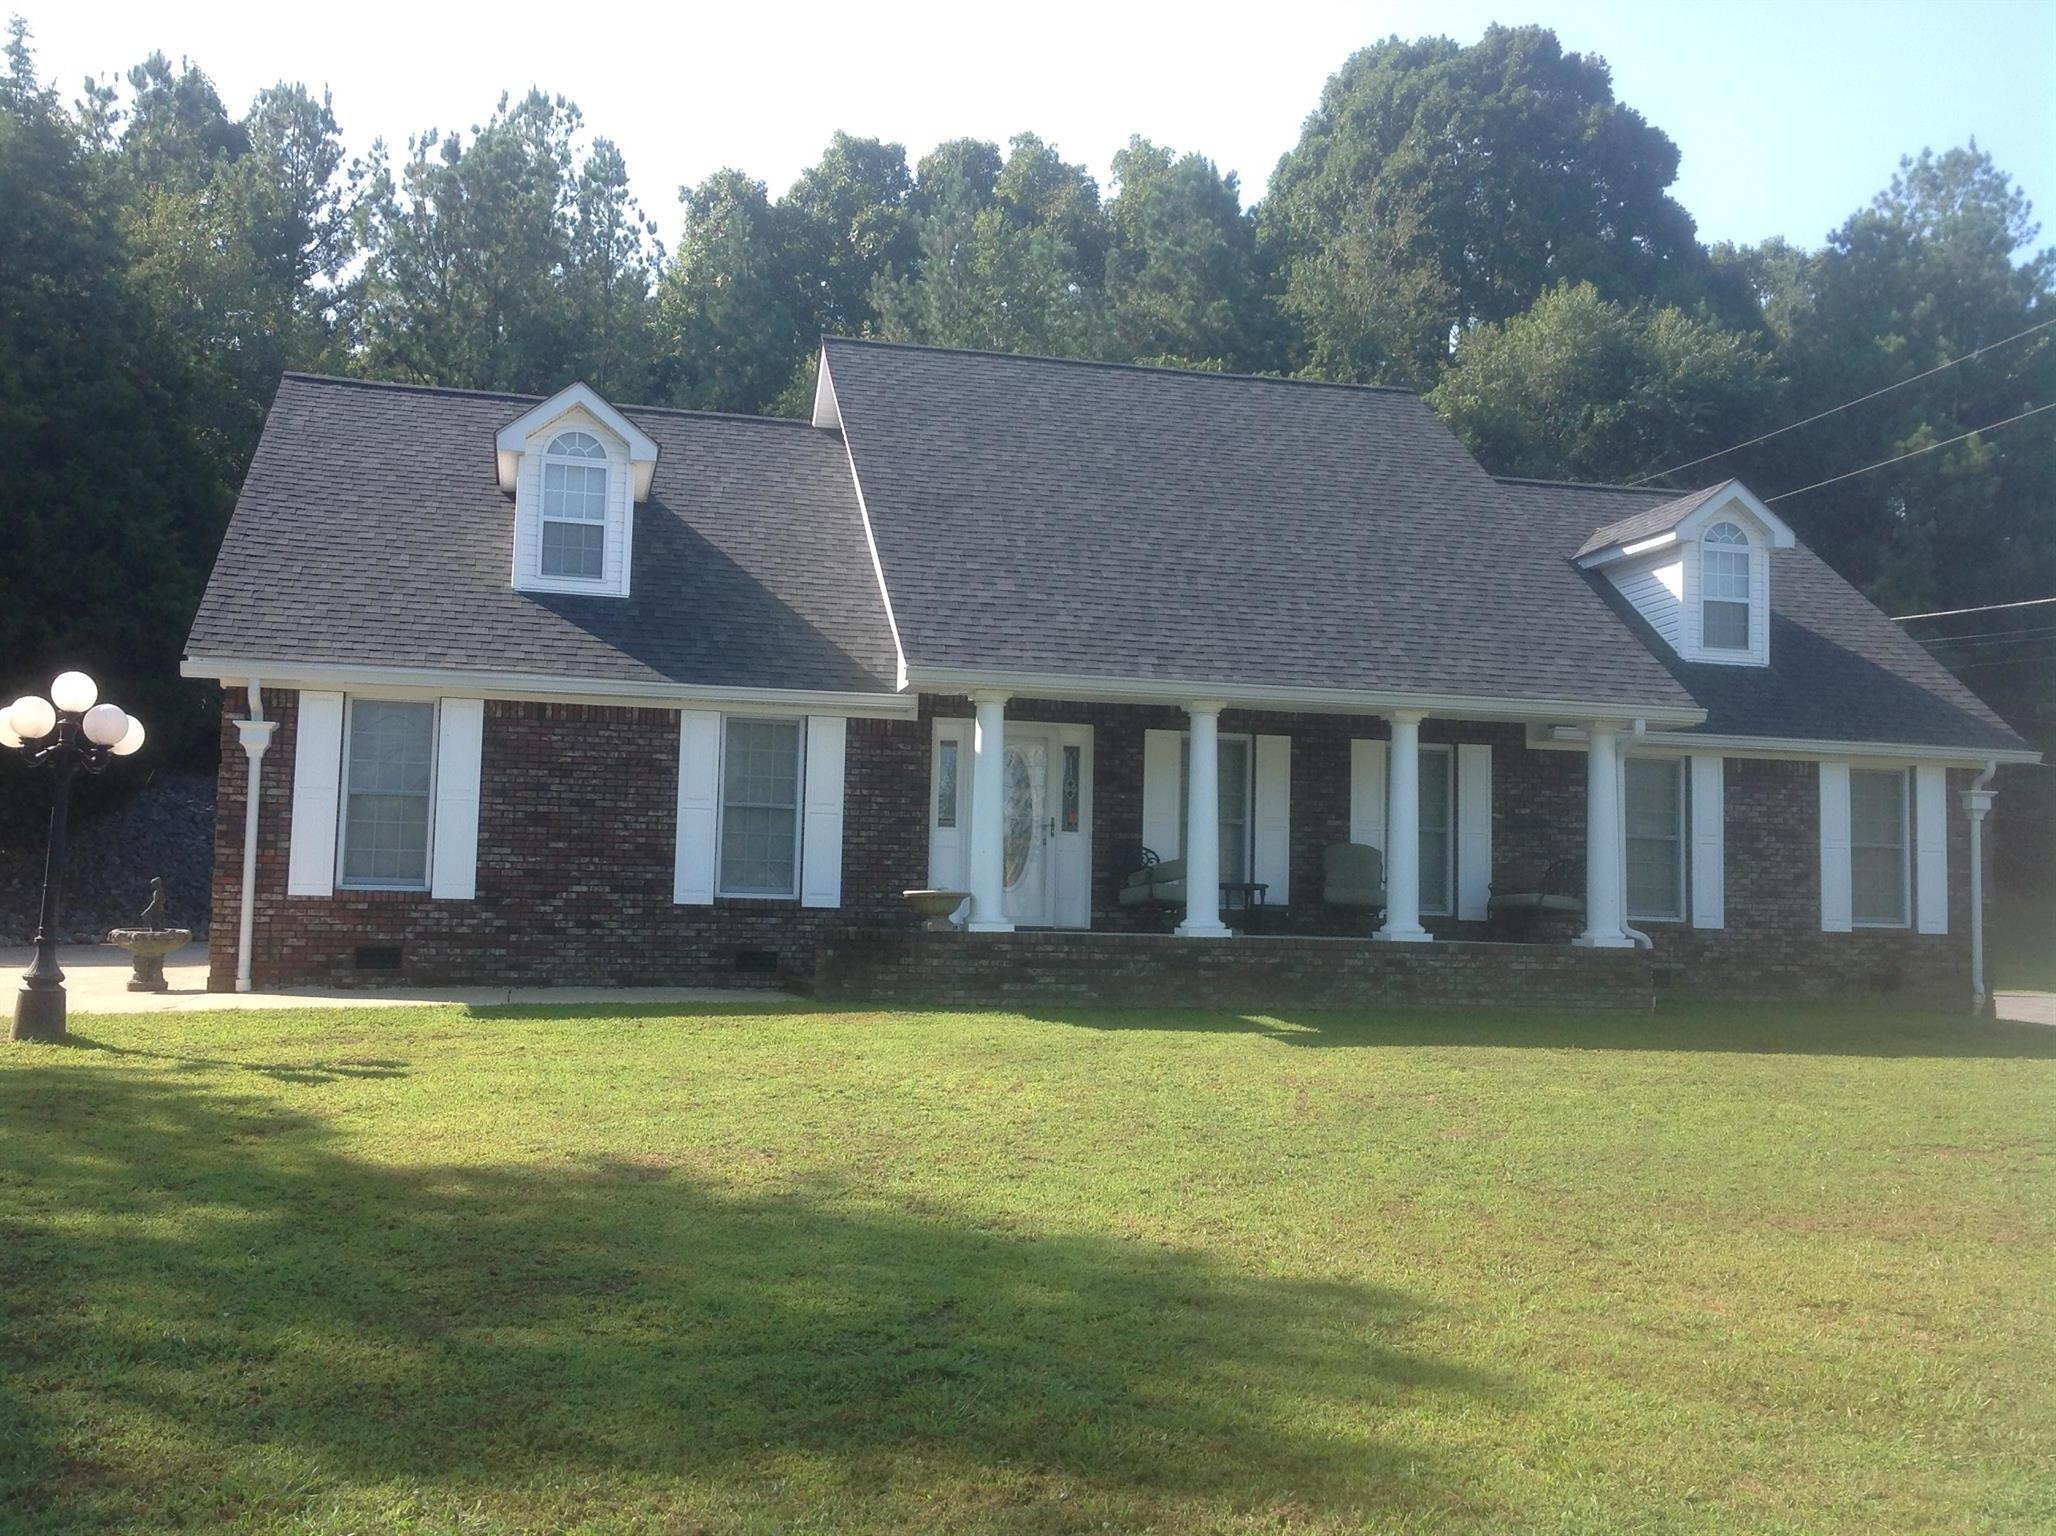 820 W Main St, Waverly, TN 37185 - Waverly, TN real estate listing